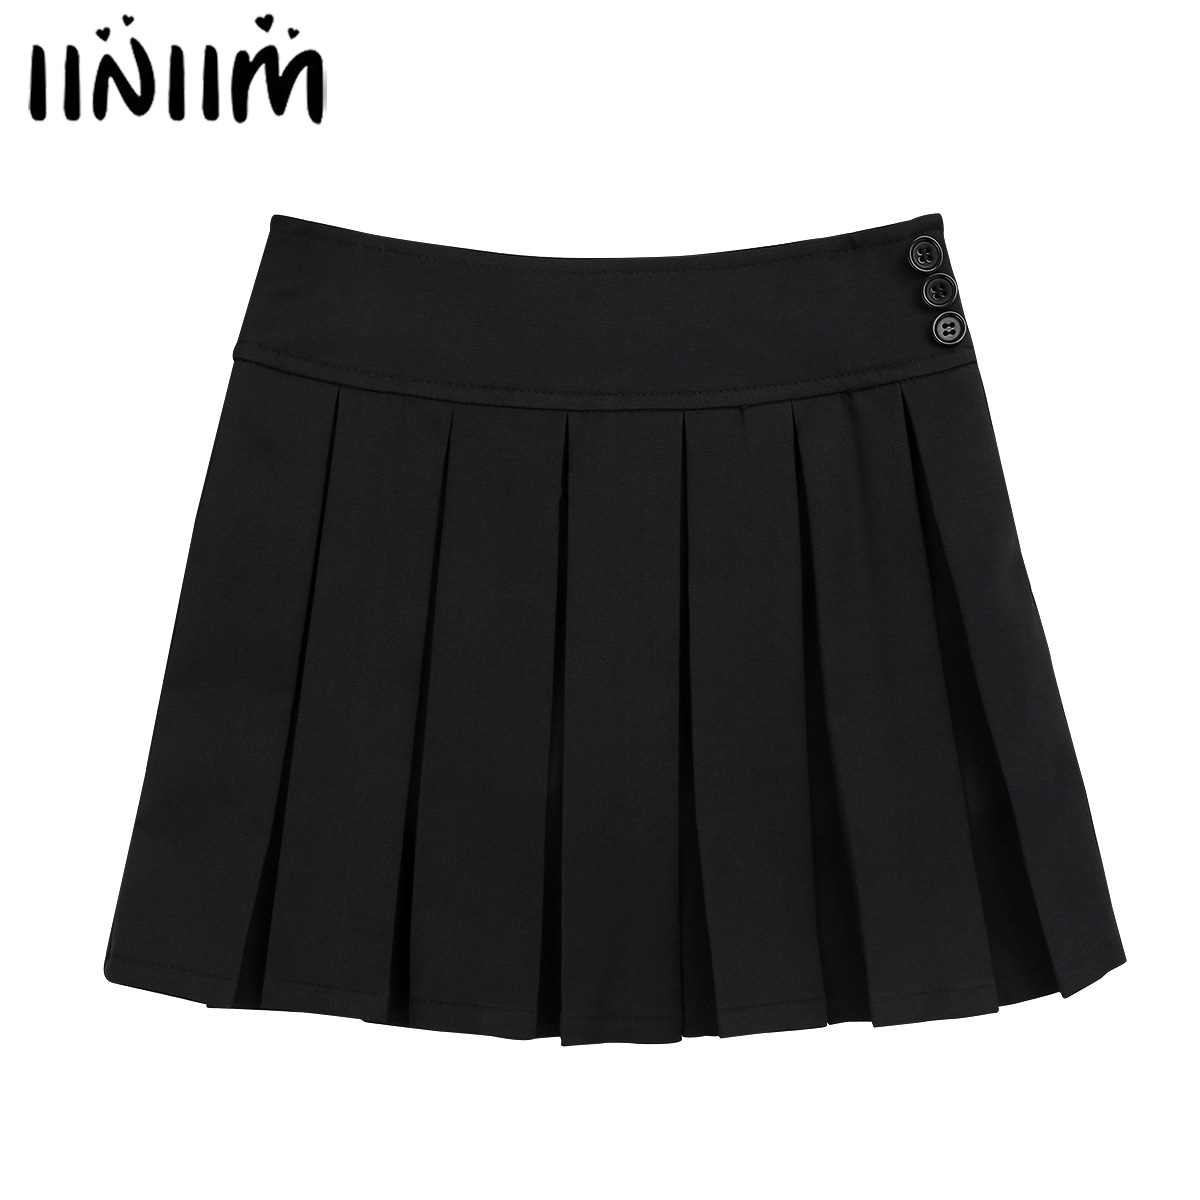 iiniim Kids Girls School Uniform Pleated Side Zipper Buttons Scooter Dance Skirt with Hidden Shorts School Skirt